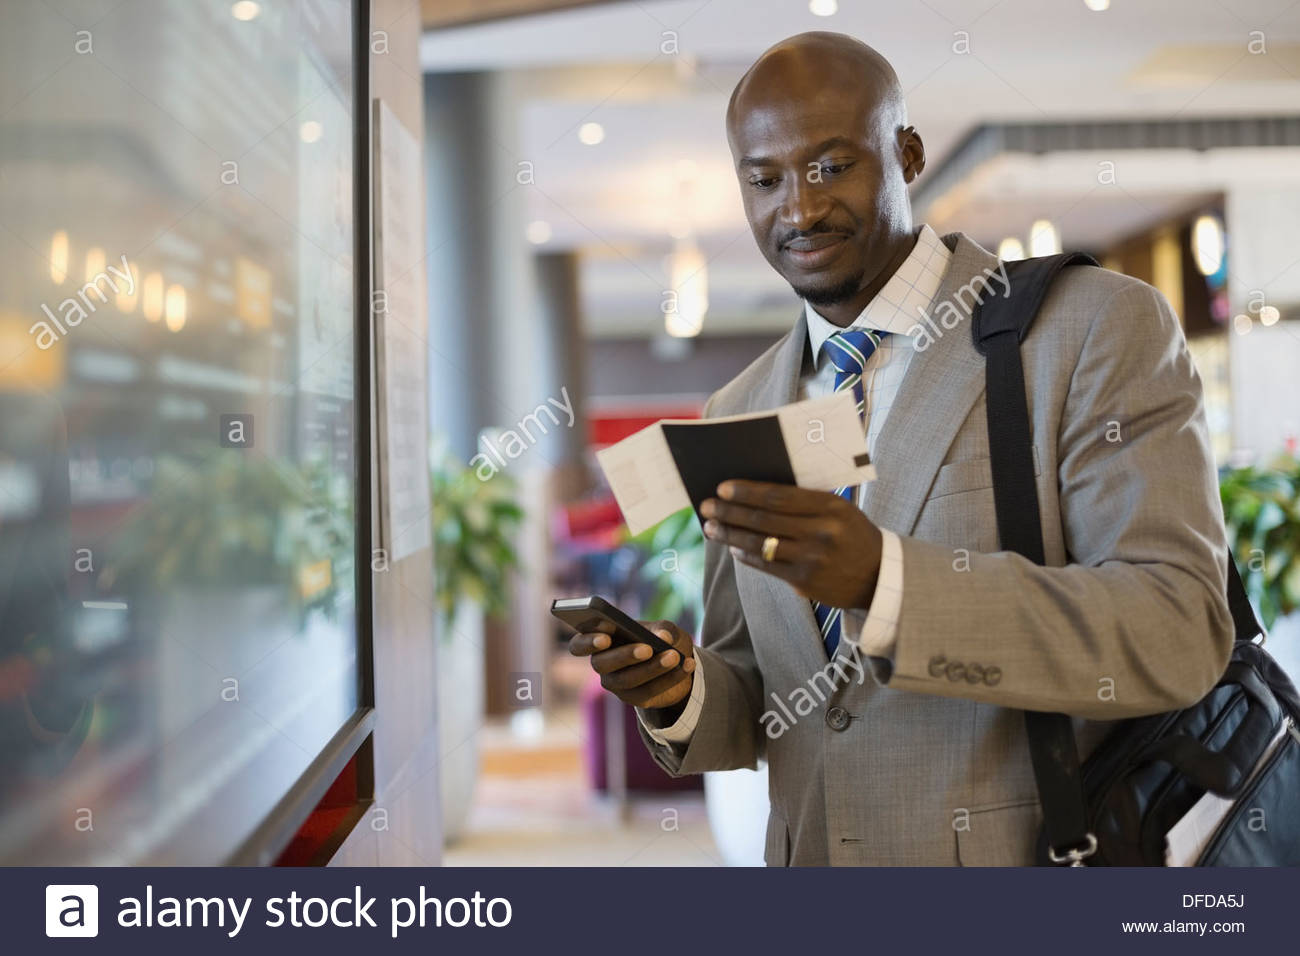 Businessman with smart phone and boarding pass standing in airport terminal - Stock Image